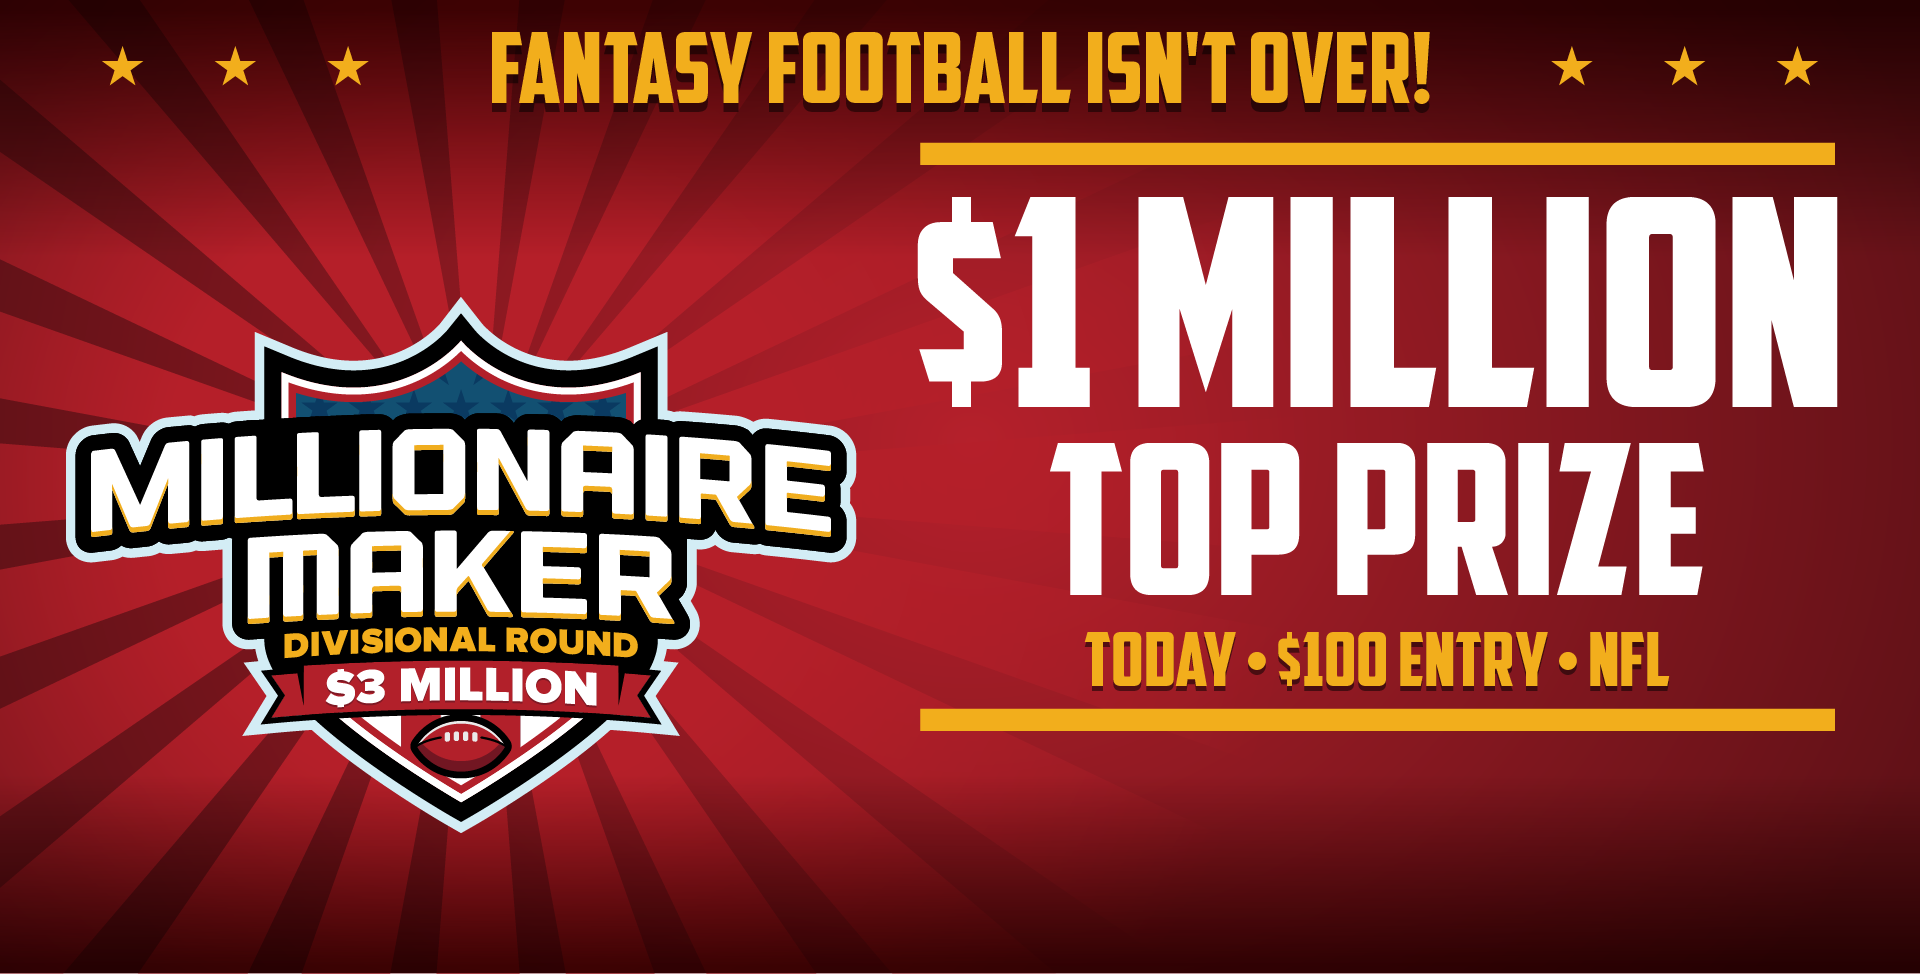 Turn $20 Into $1 Million. $4MM Fantasy Football Millionaire Maker.